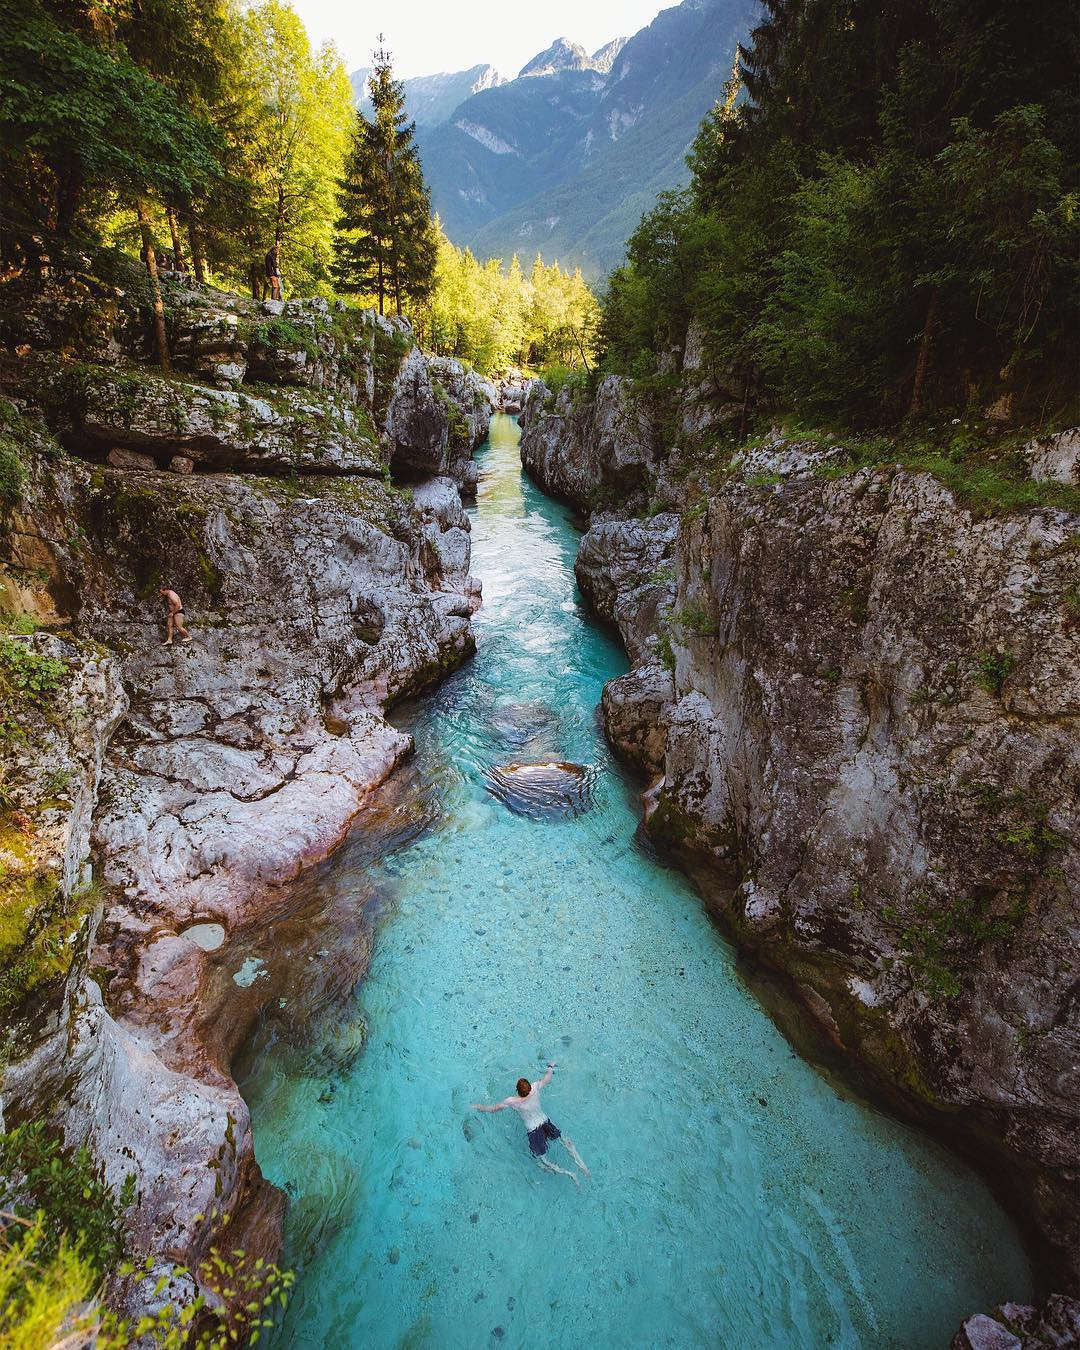 Hello lovely Saturday,  let's make a refreshing jump into the water on this sunny weekend!  Whom would you take with you, to this adventure?  Thanks @alexstrohl for sharing your photo with #ifeelsLOVEnia.